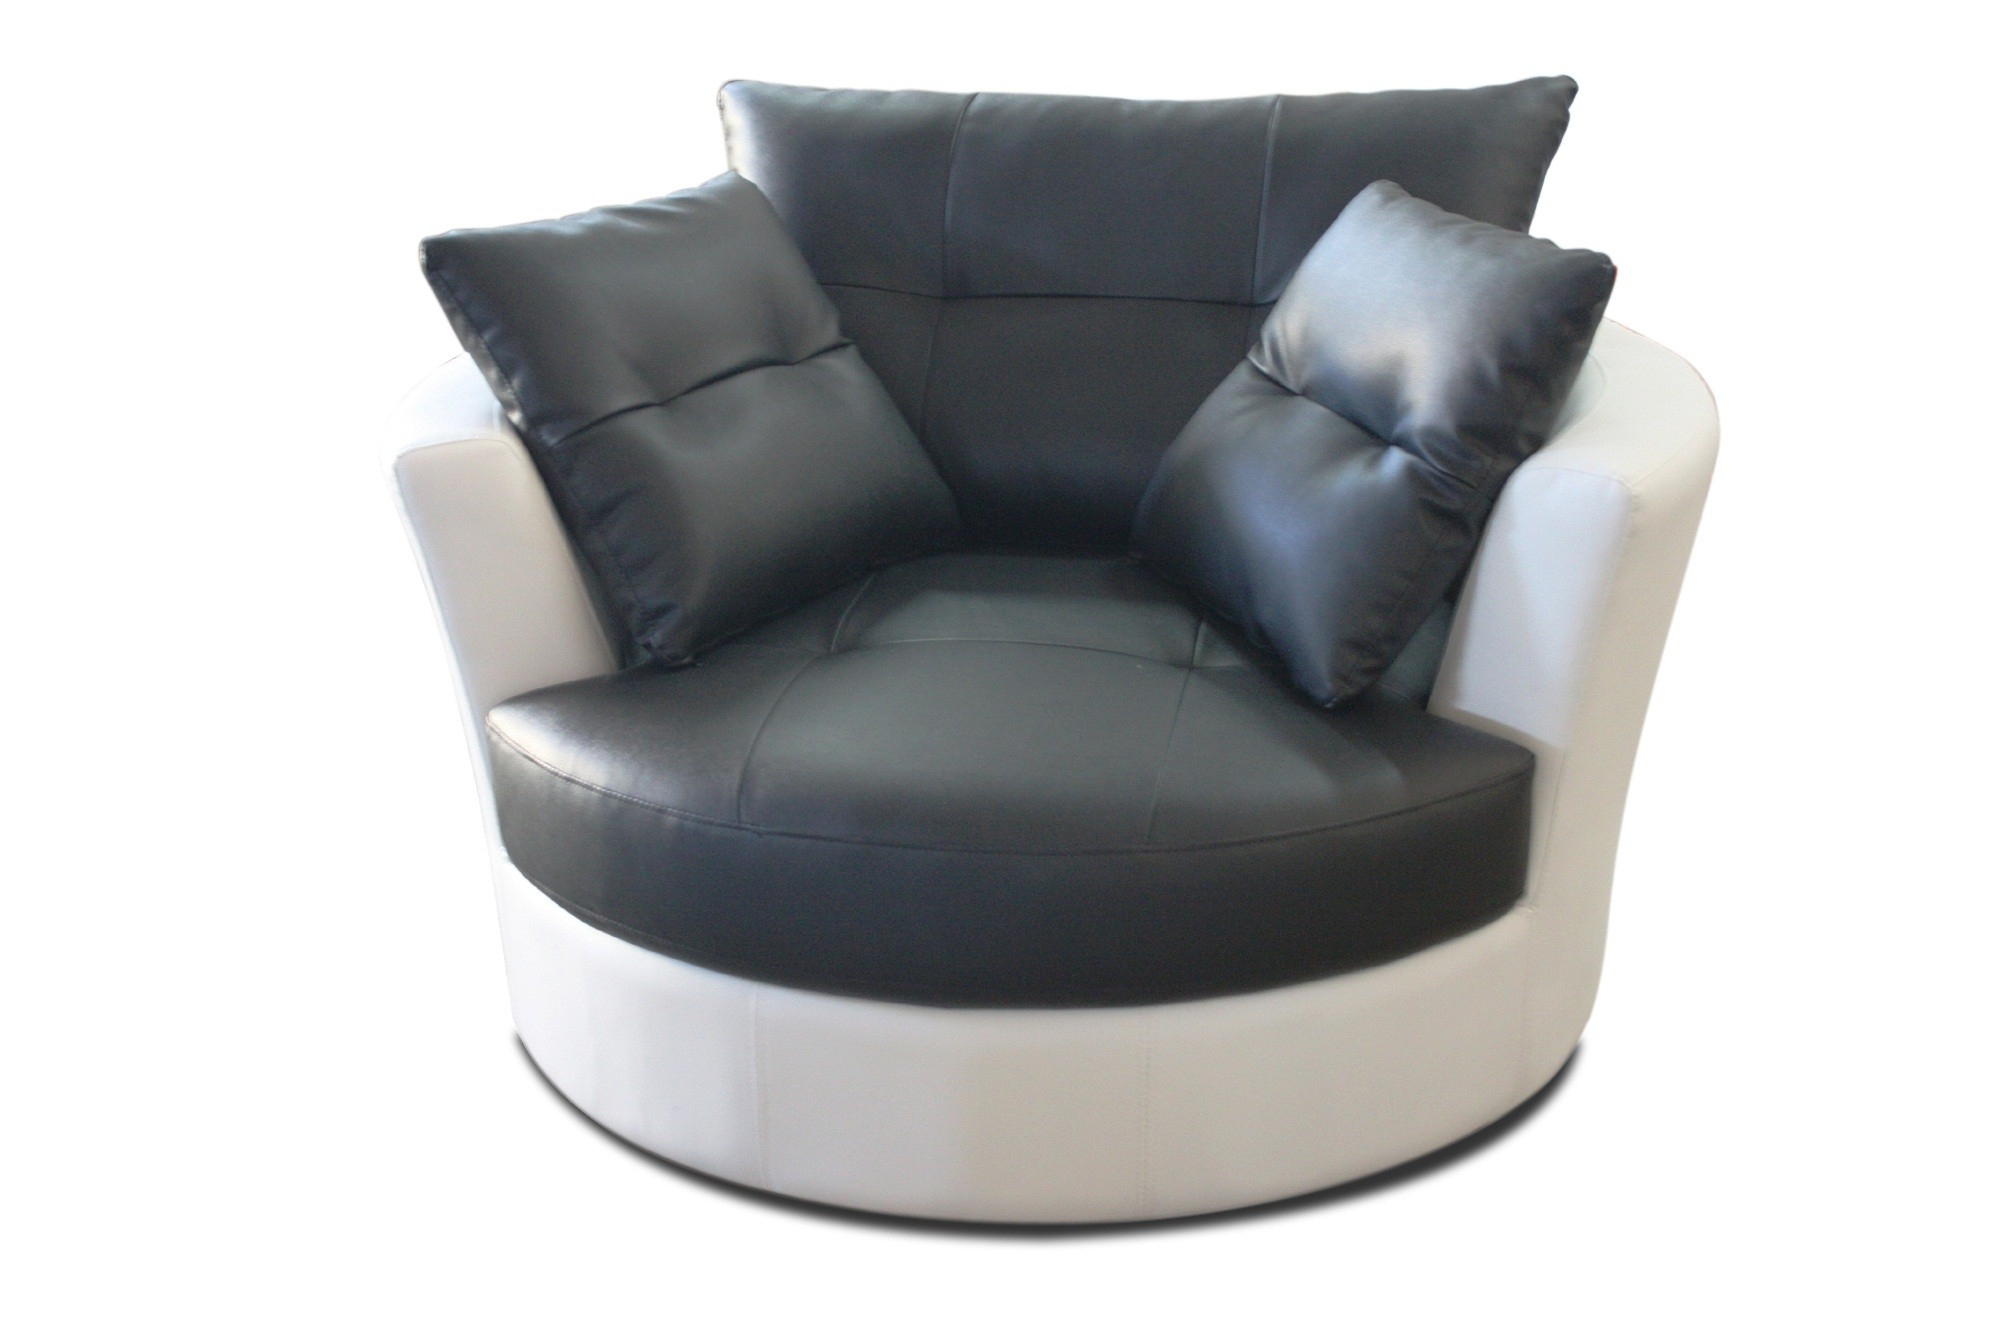 Sofas With Swivel Chair Throughout Favorite Fresh Swivel Sofa Chair 55 For Sofas And Couches Ideas With Swivel (View 15 of 20)